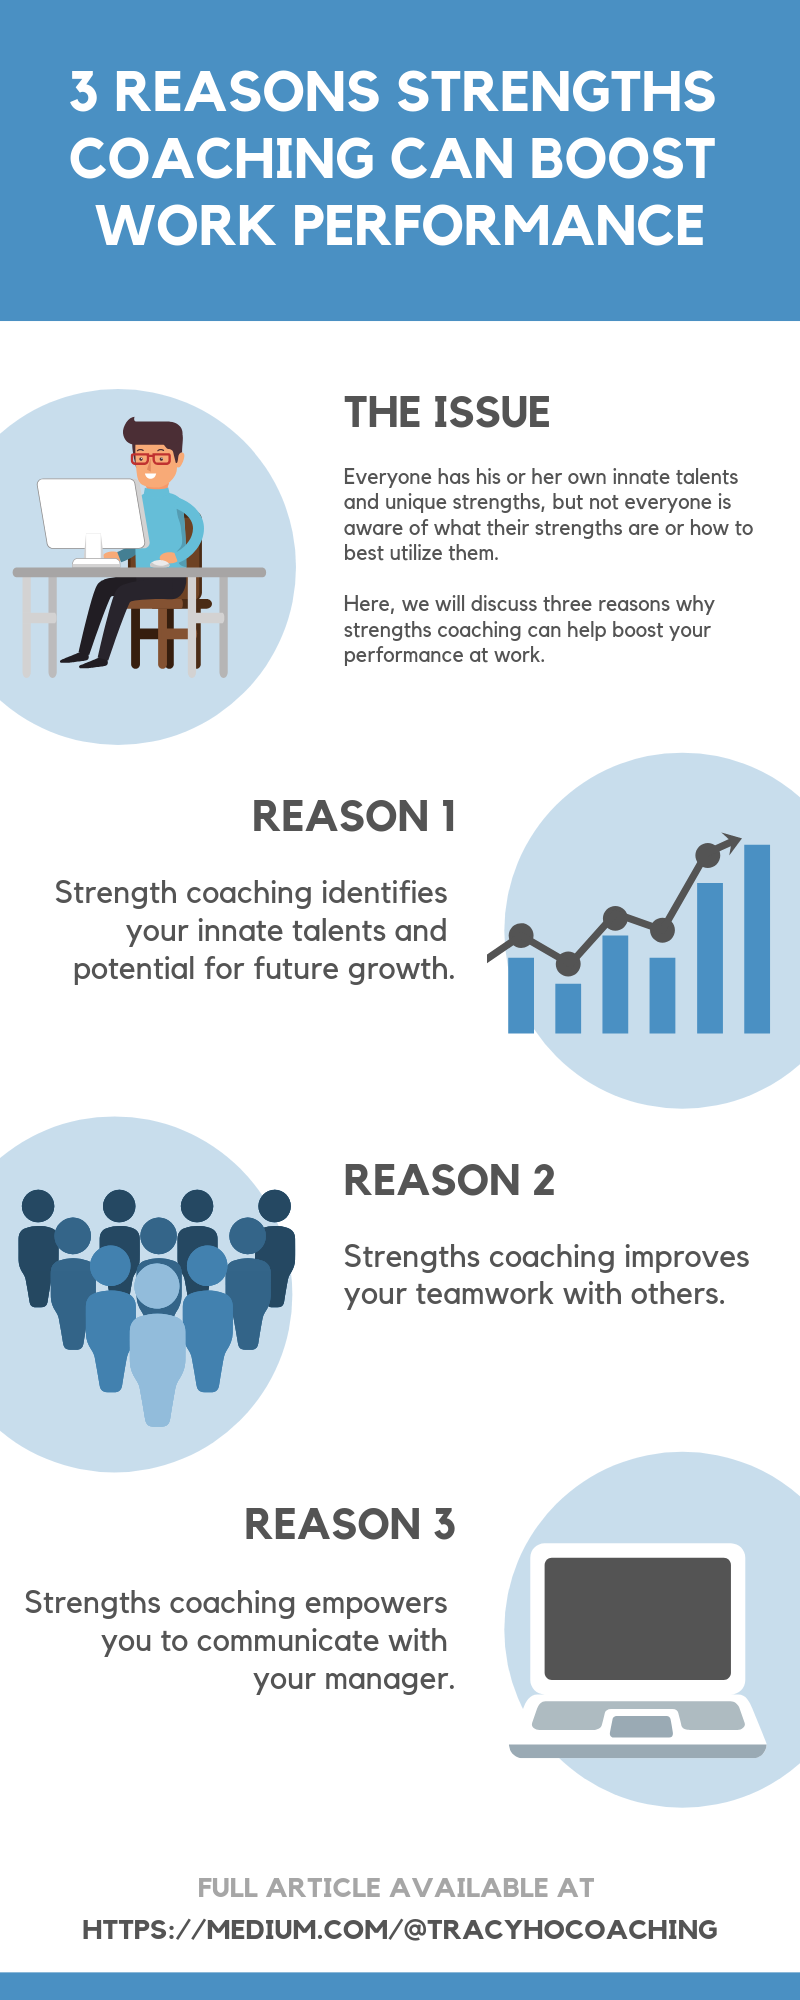 3 Reasons Why Strengths Coaching Can Boost Work